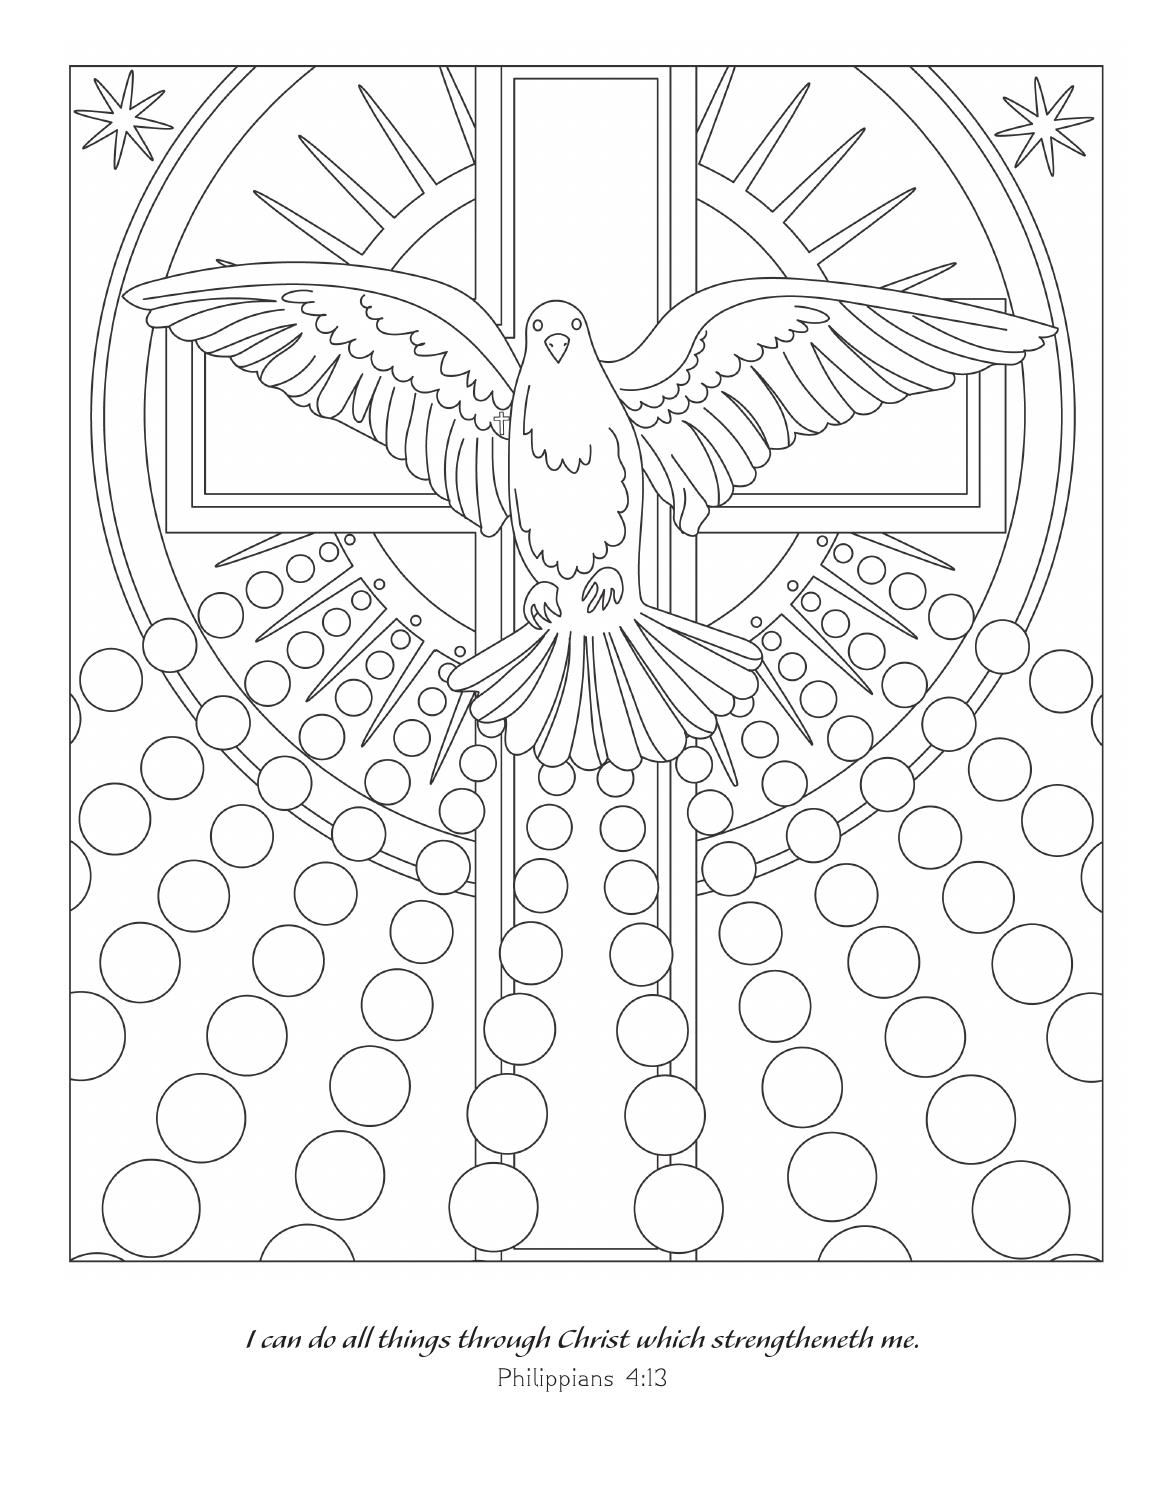 Devotional Coloring: Visual Scriptures  The second book in the Devotional Coloring series, Visual Scriptures is a faith-based coloring book for all ages. Creative souls will be inspired by spirit-lifting Bible verses accompanying detailed patterns and images for coloring that illustrate the beauty of the Bible's eternal words of wisdom.